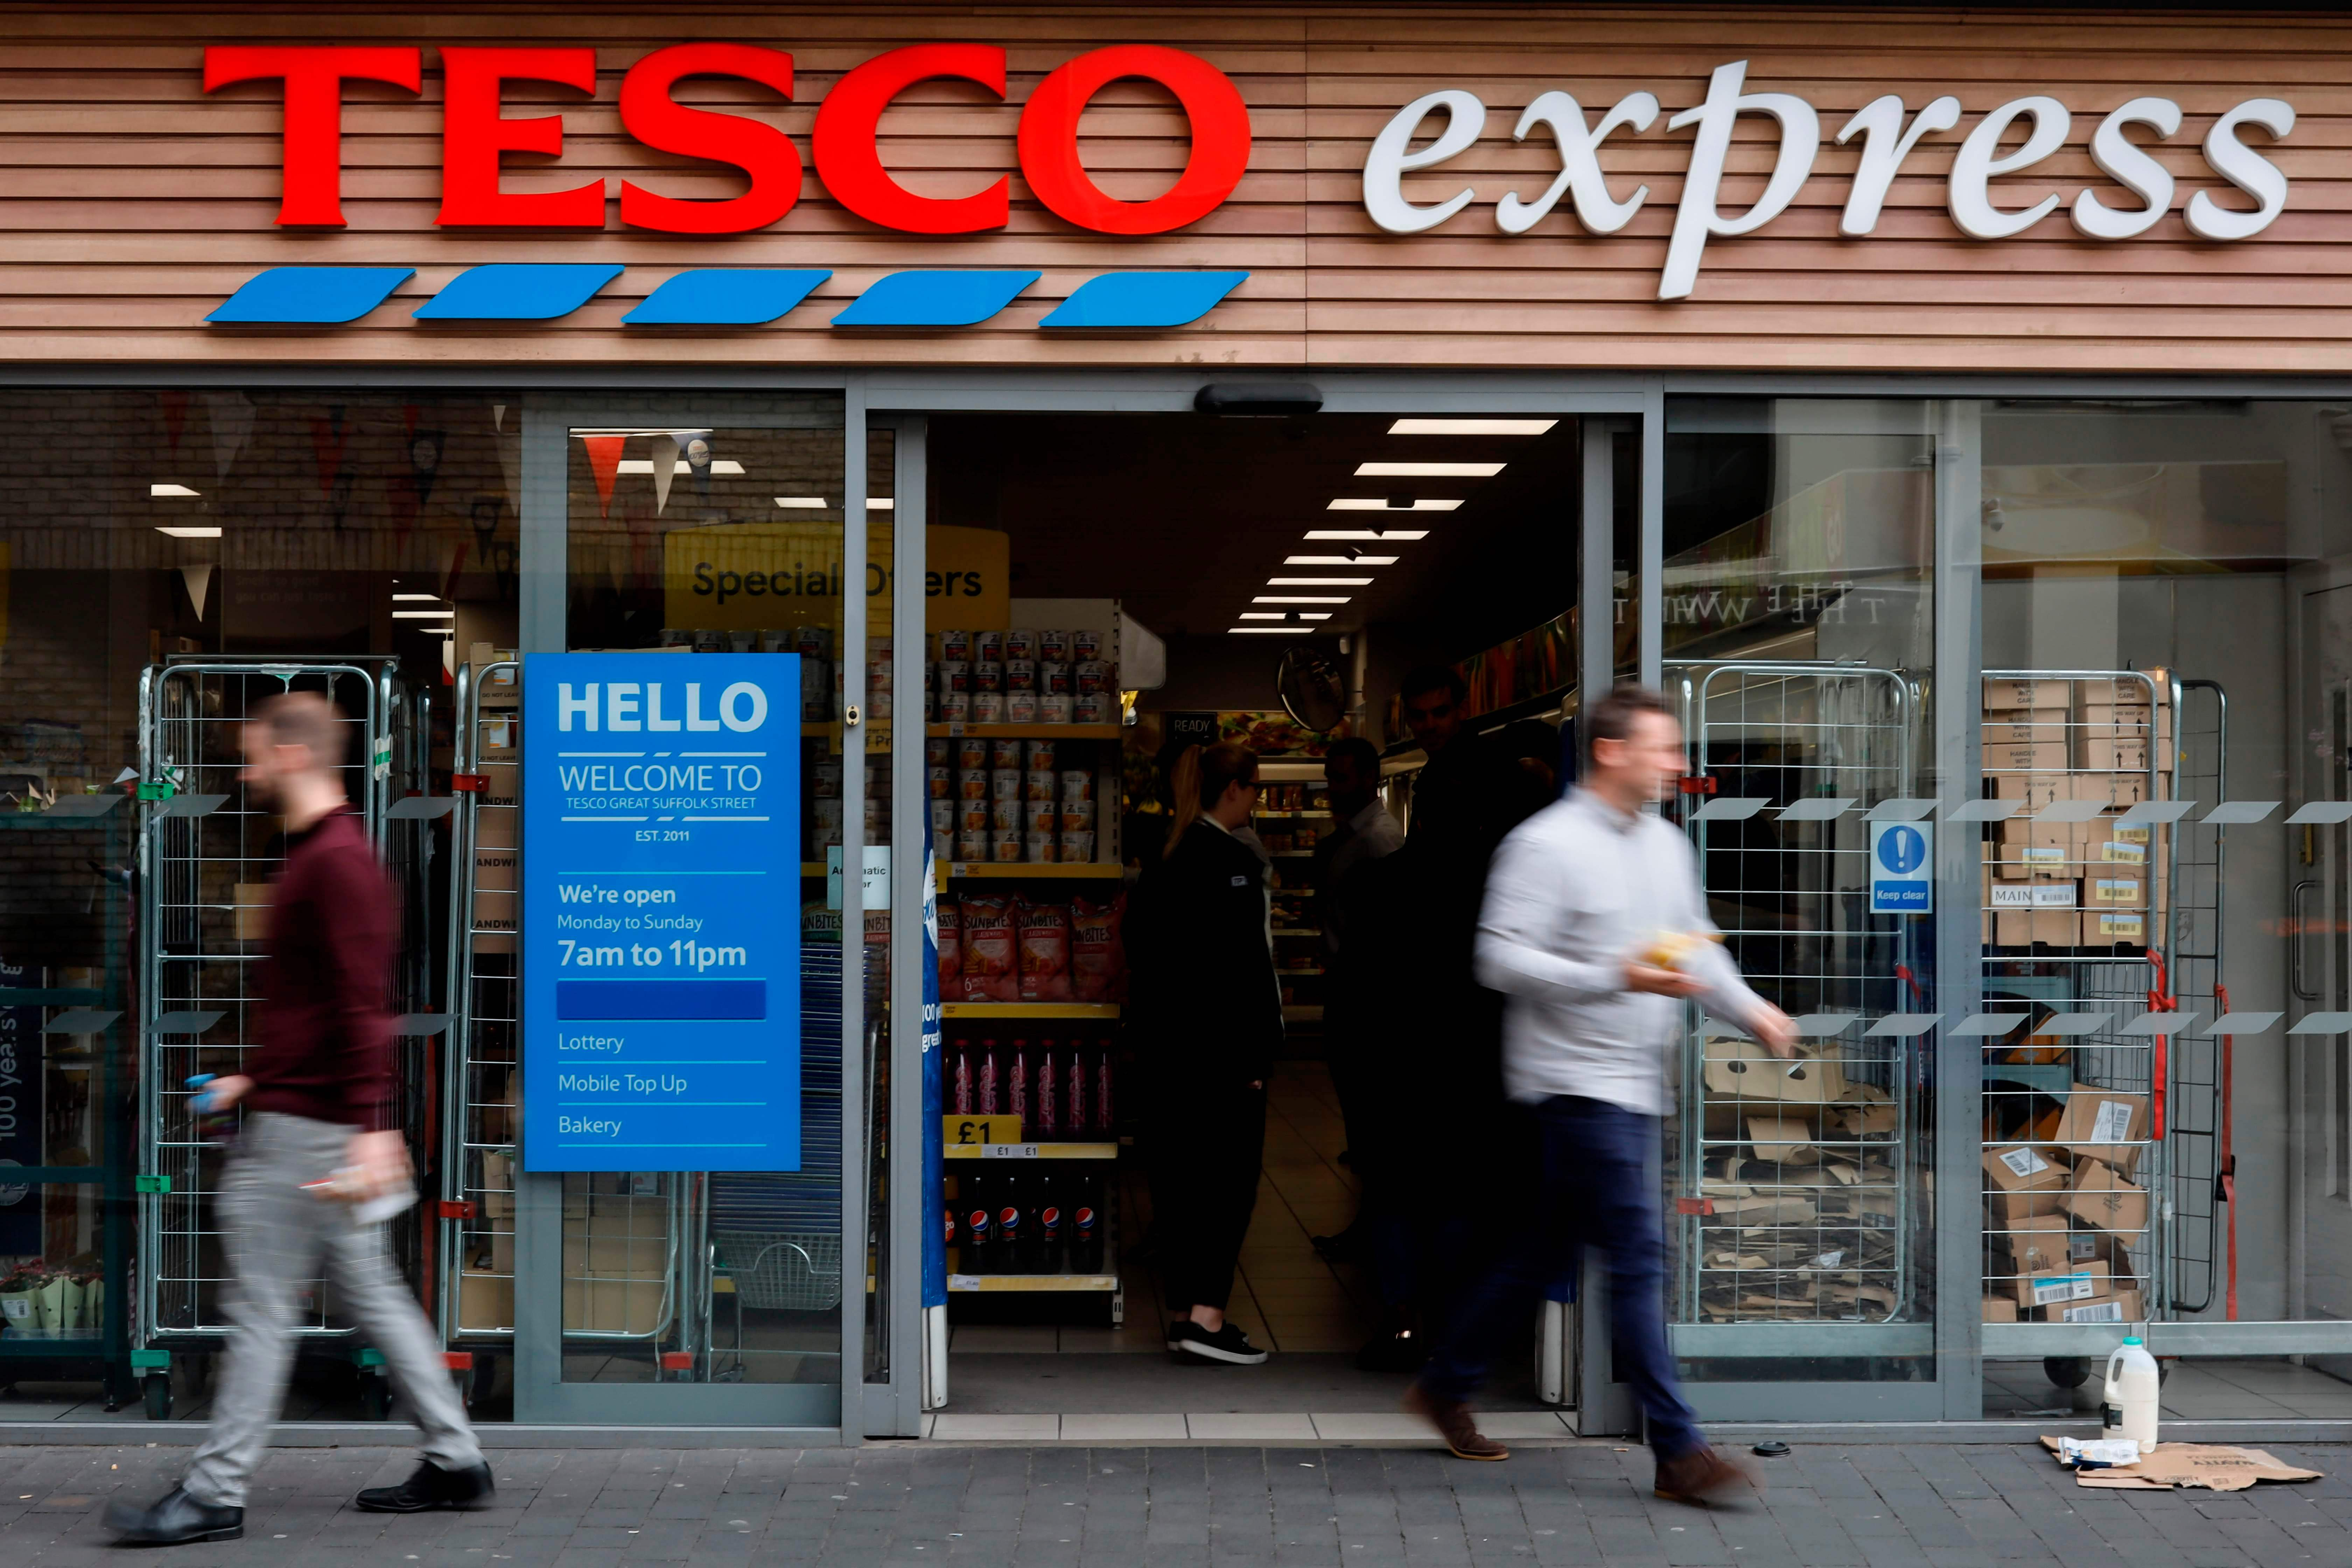 Opt in to become a 'Christmas saver' at Tesco by logging into your Clubcard account